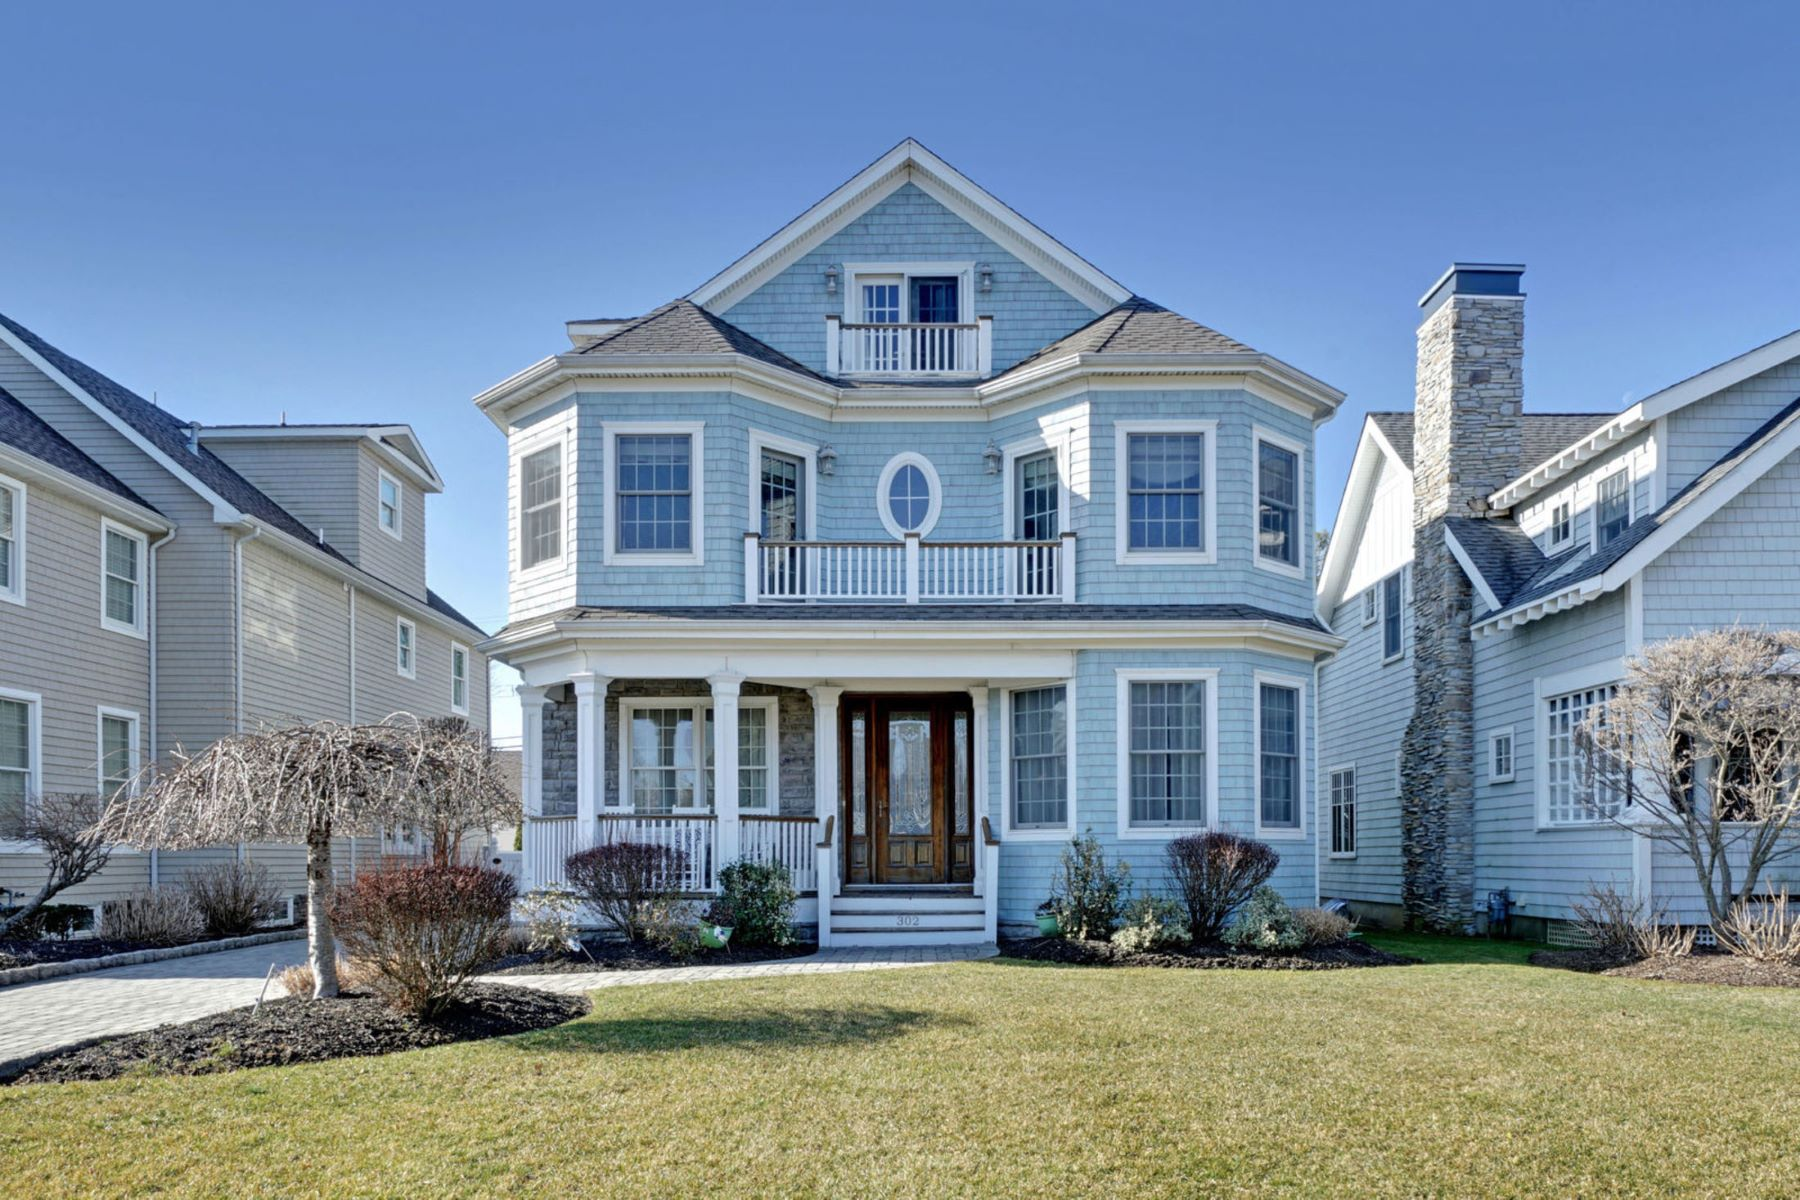 Maison unifamiliale pour l Vente à Office Exclusive 302 Beacon Boulevard, Sea Girt, New Jersey 08750 États-Unis